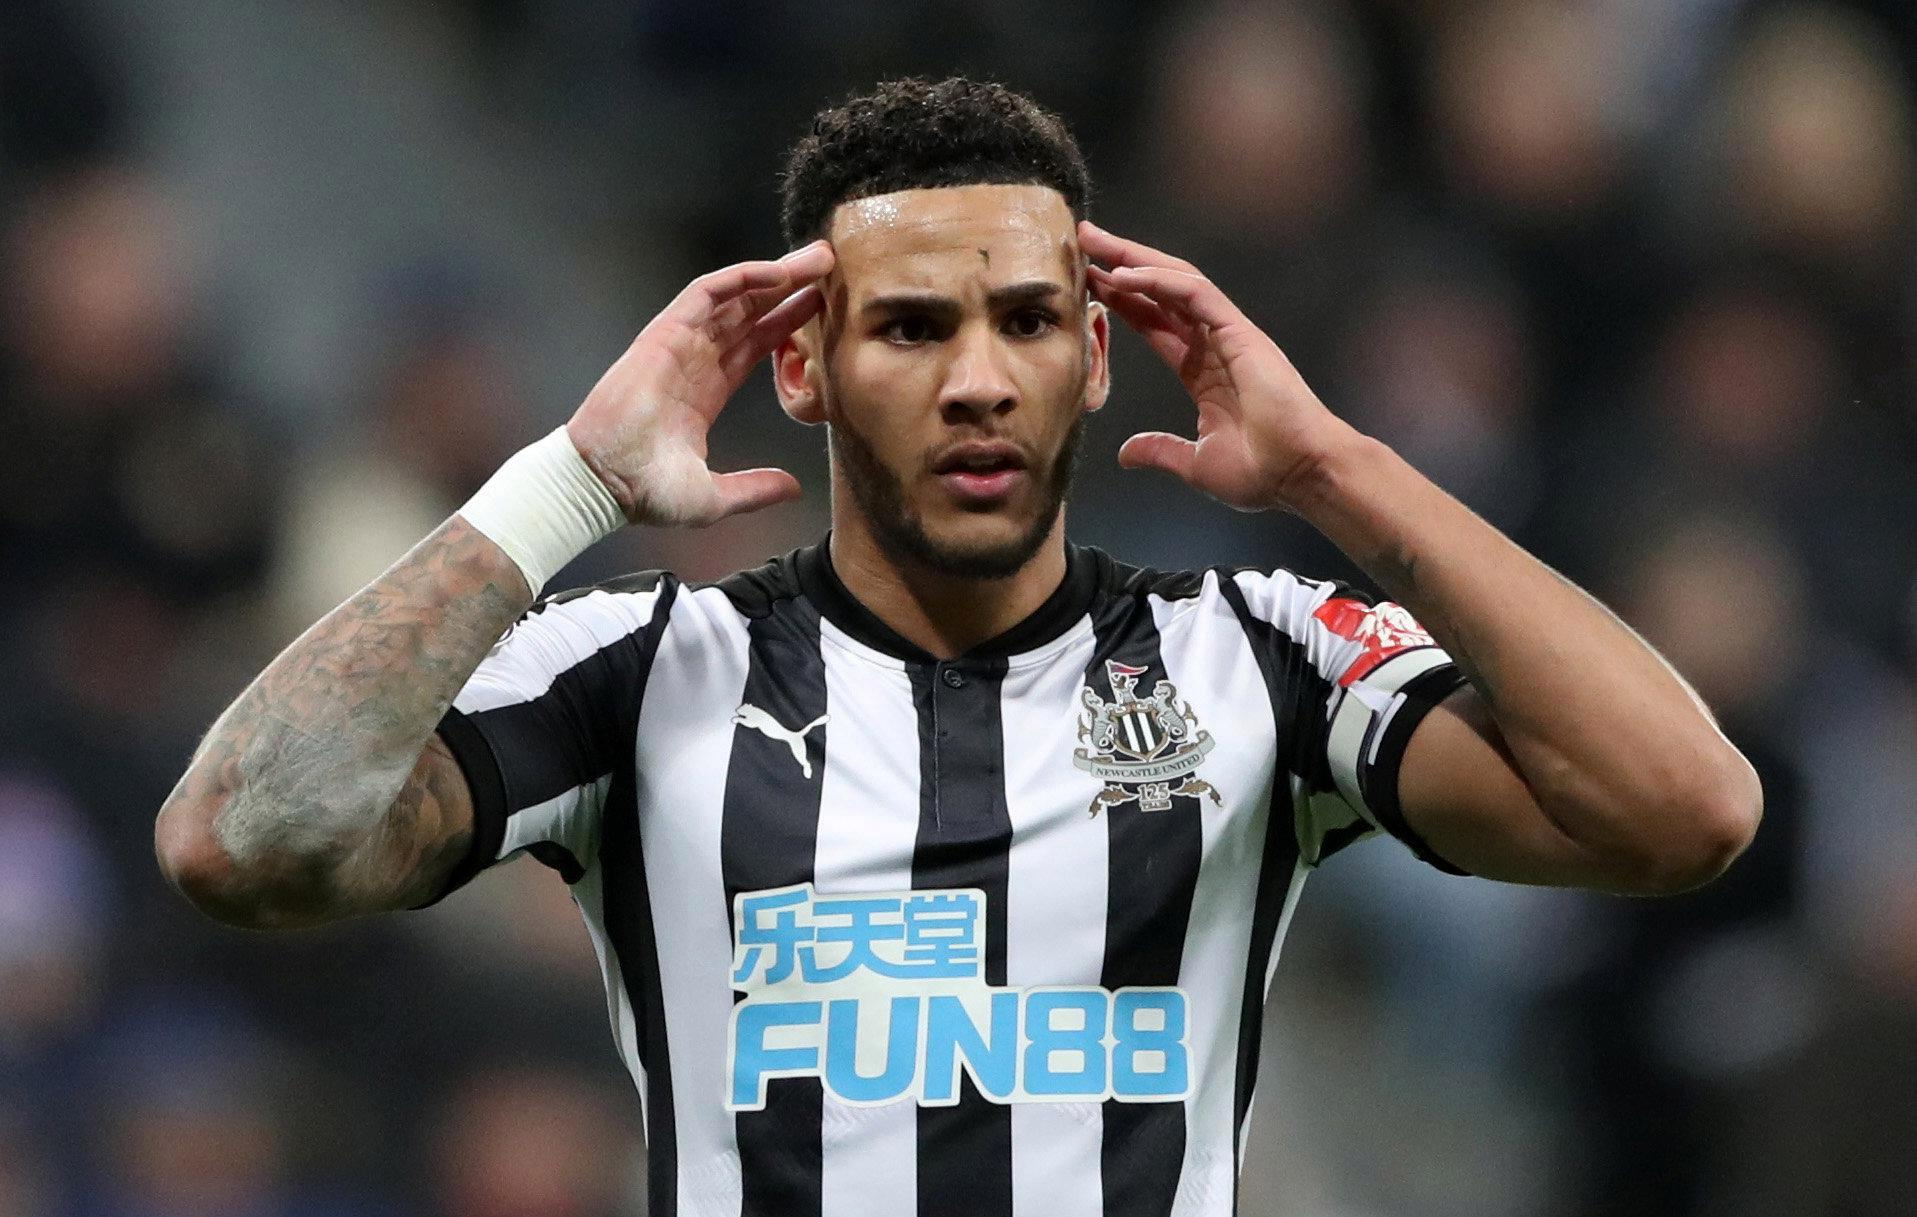 Newcastle captain Jamaal Lascelles picks up injury during FA Cup third-round clash with Luton… and fans are furious